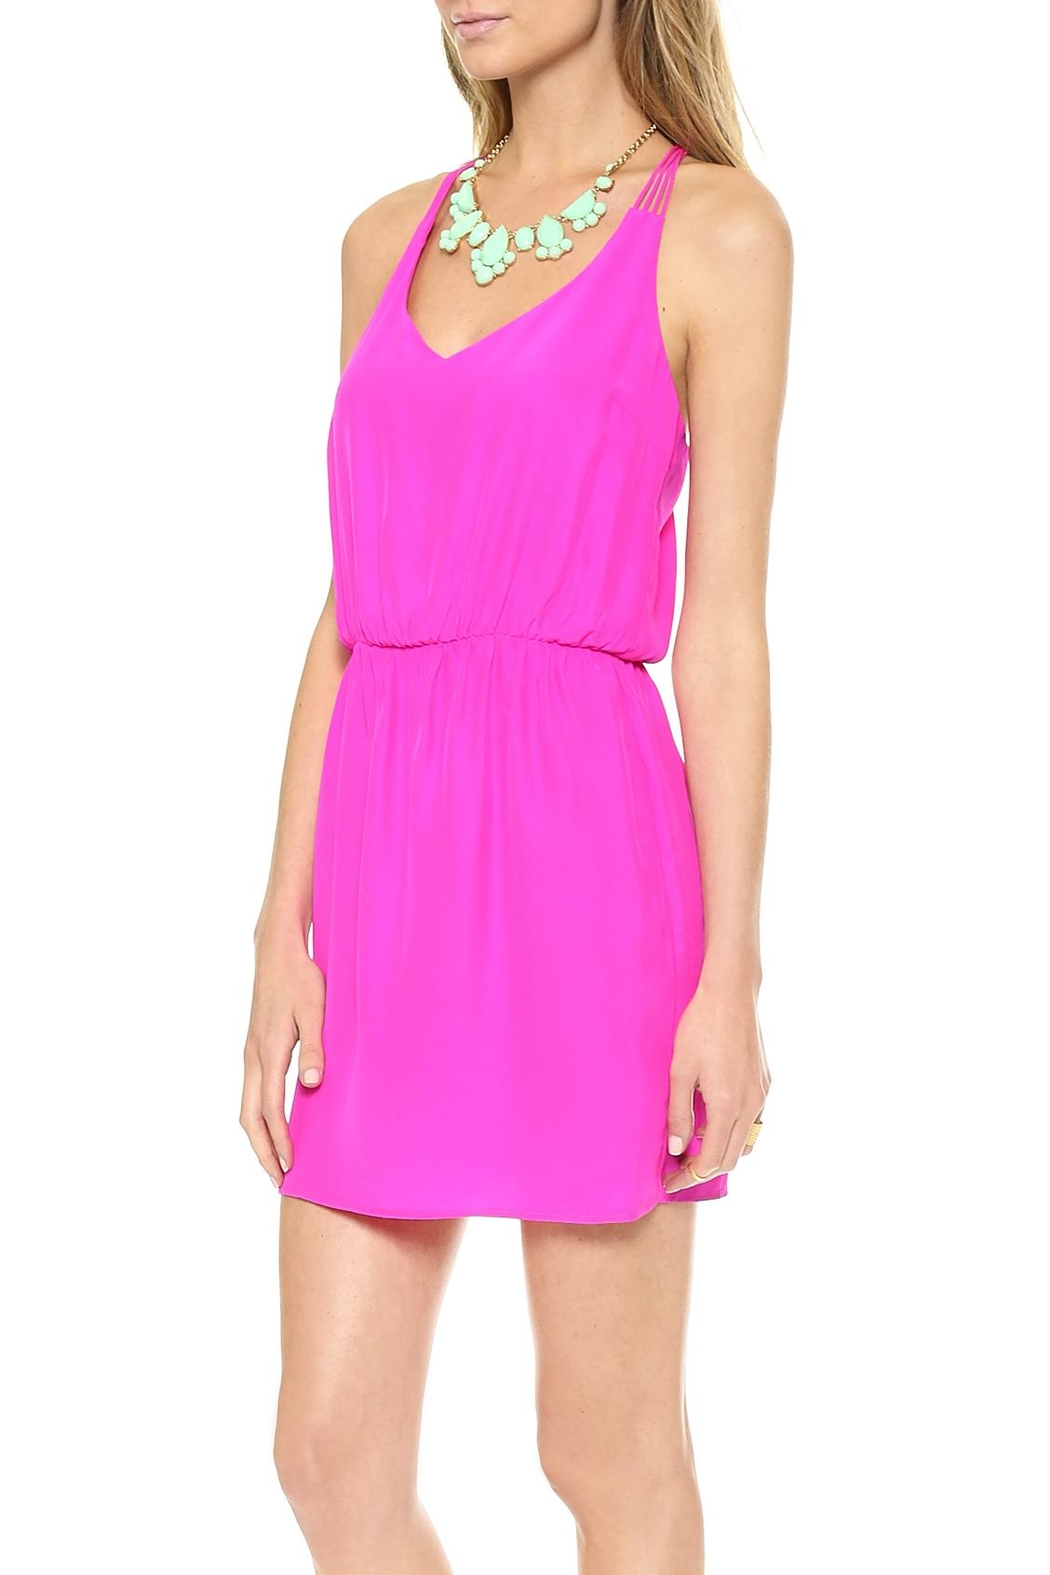 Amanda Uprichard Multi Strap Dress - Main Image